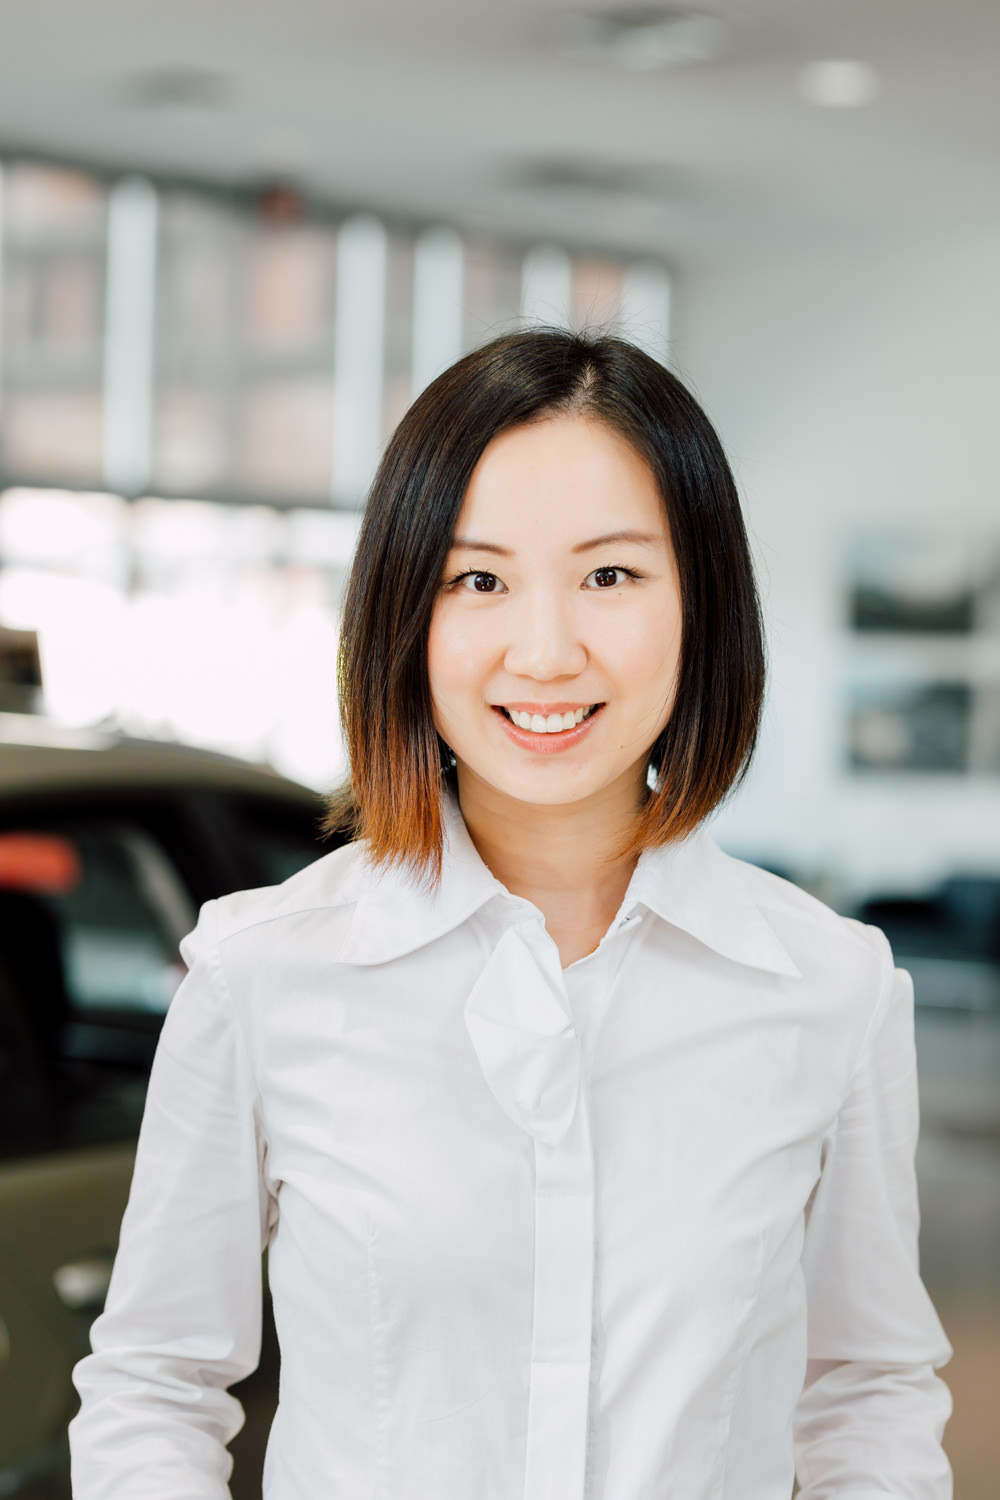 Lili Xu - Financial Services Manager